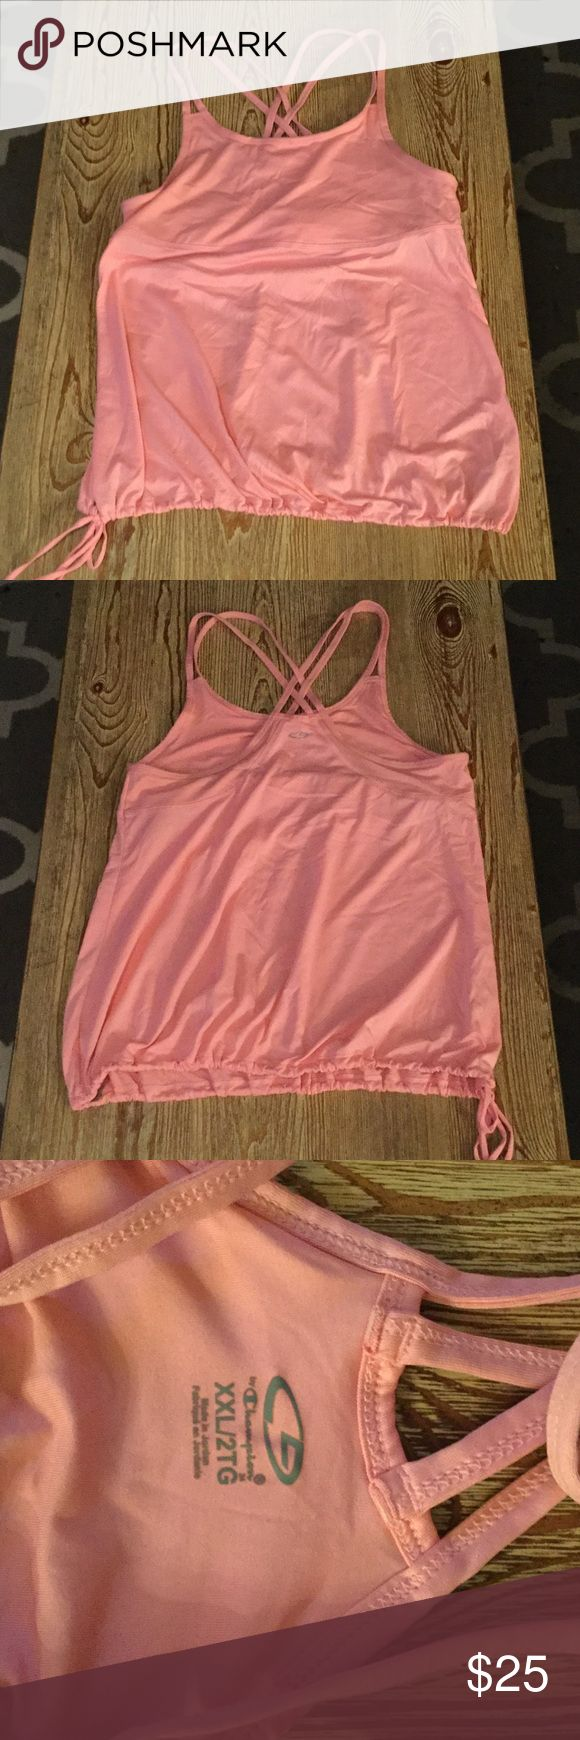 Champion pink cute workout shirt Champion pink workout strappy razorback workout shirt. Tight built-in bra and loose fit bottom half of shirt with adjustable tie. Champion Tops Tank Tops